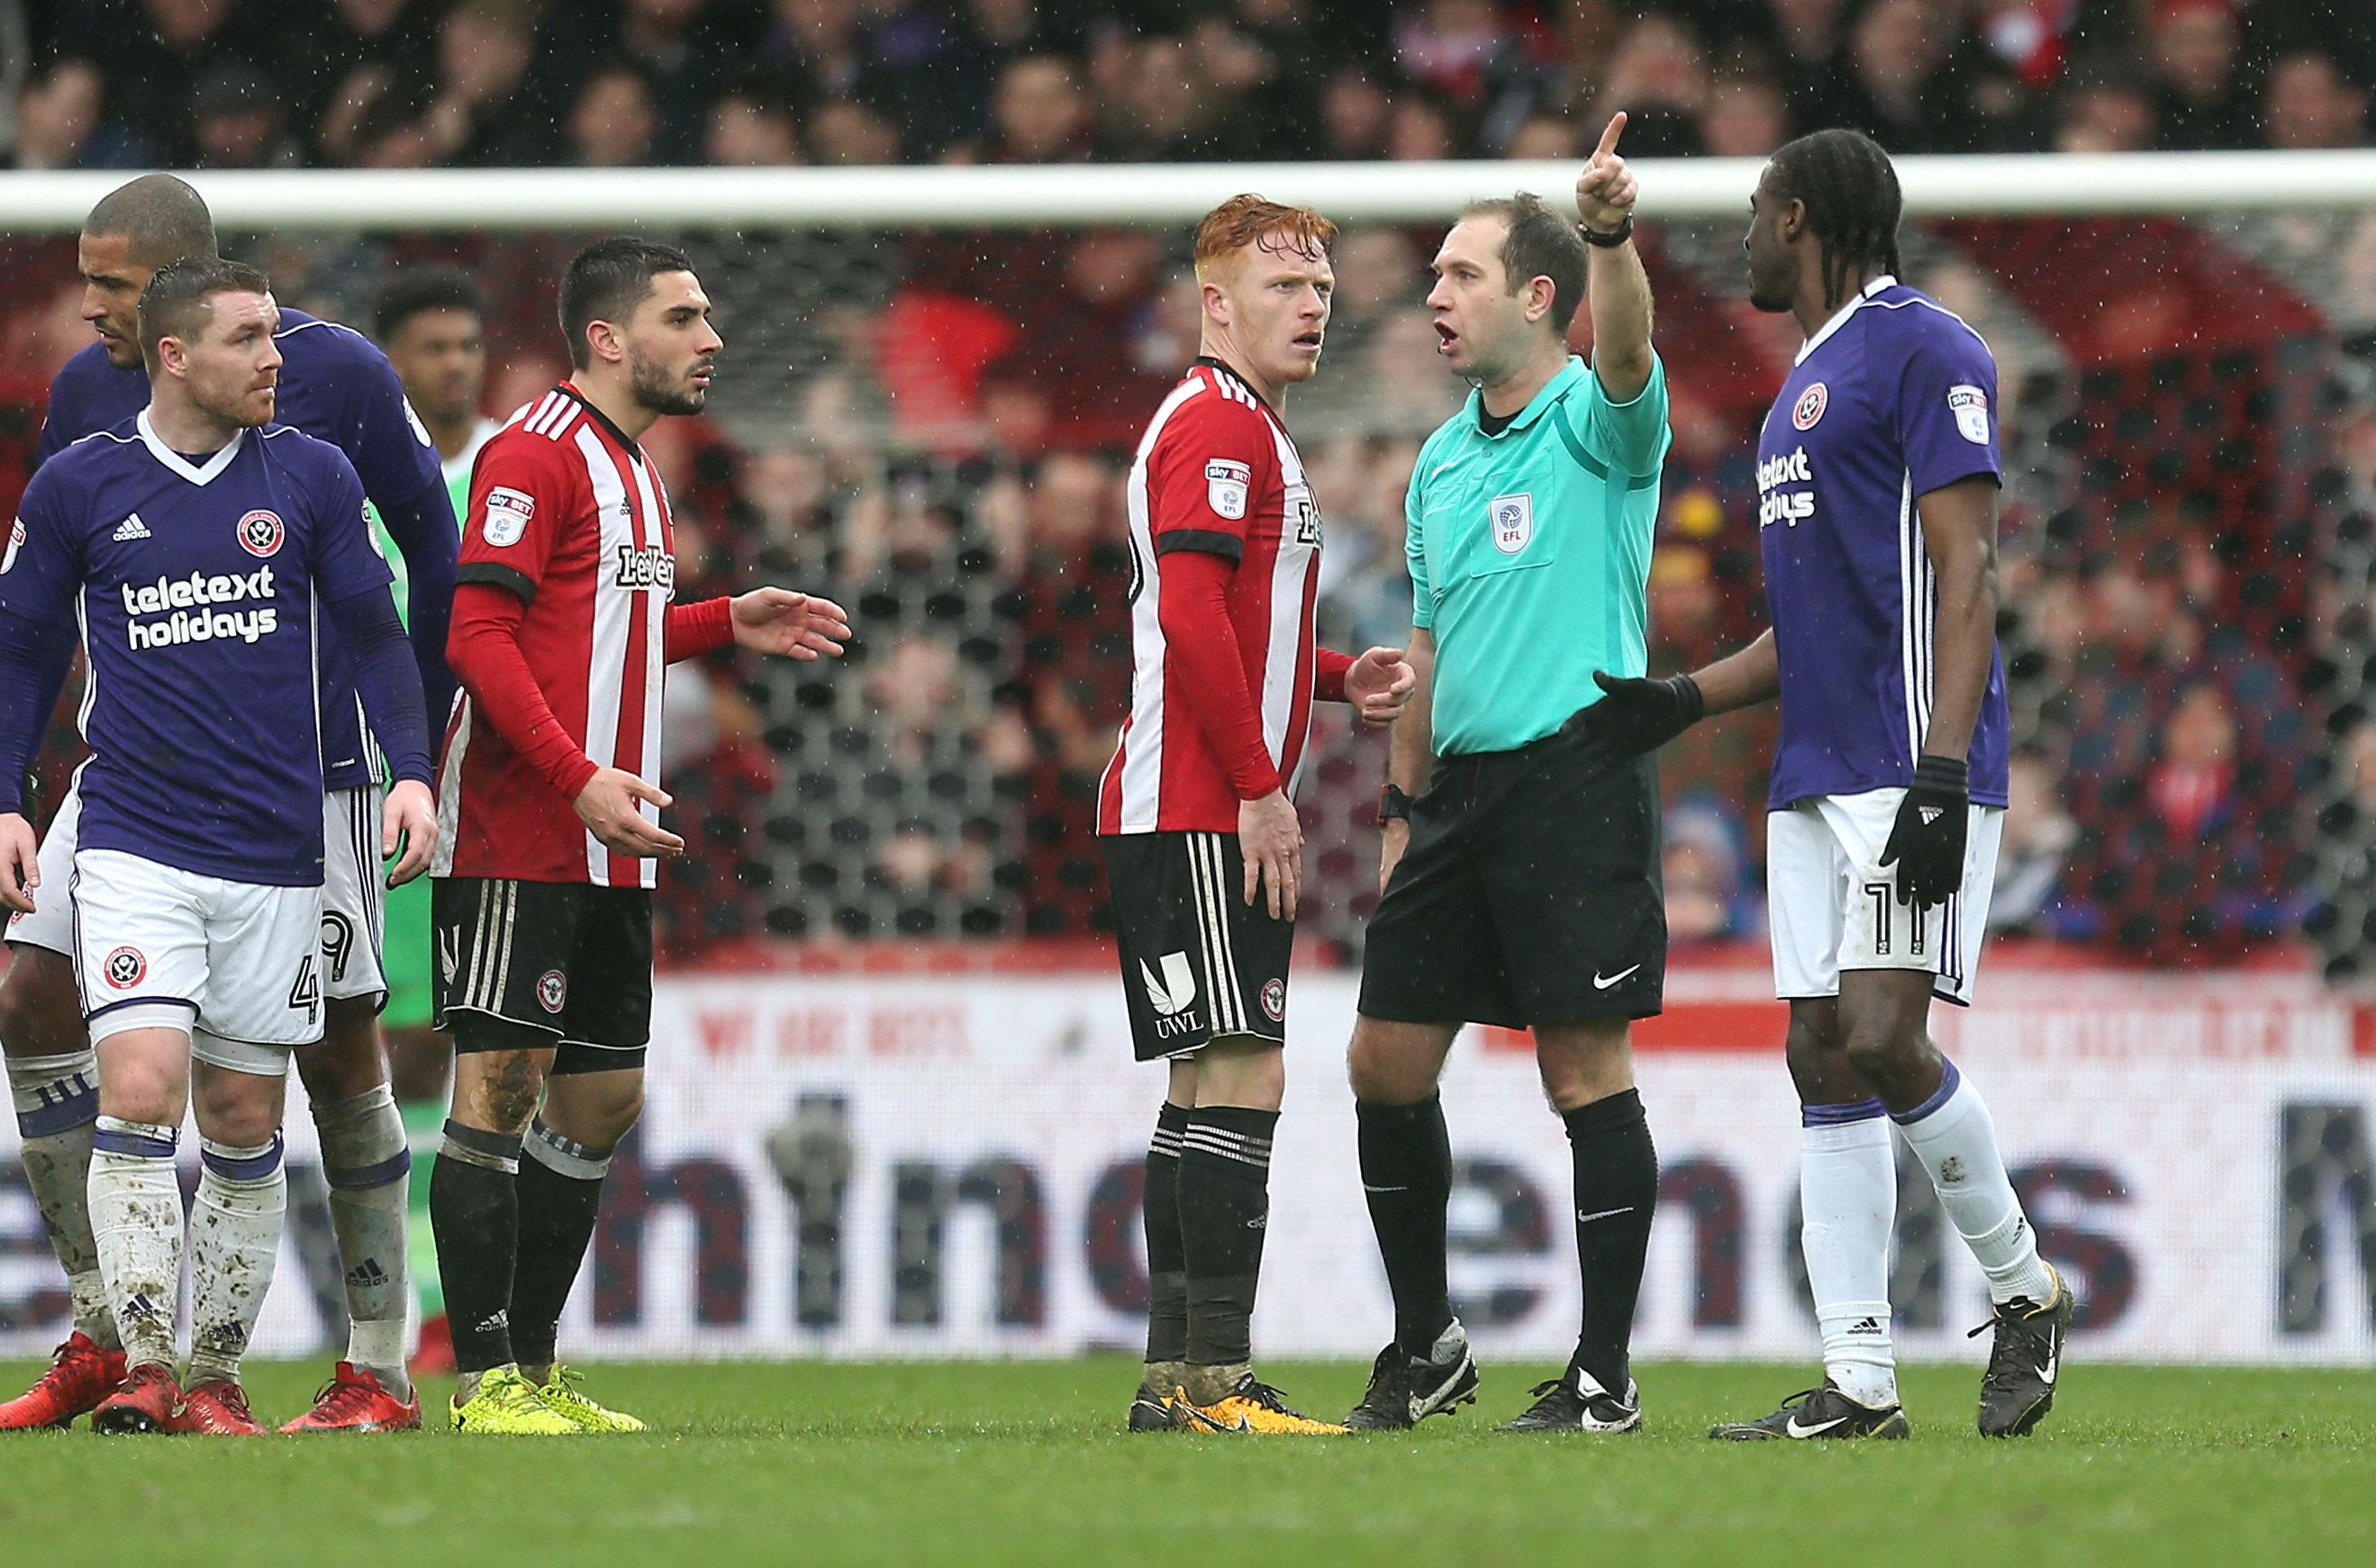 Ryan Woods is sent off after his clash with Jamal Blackman